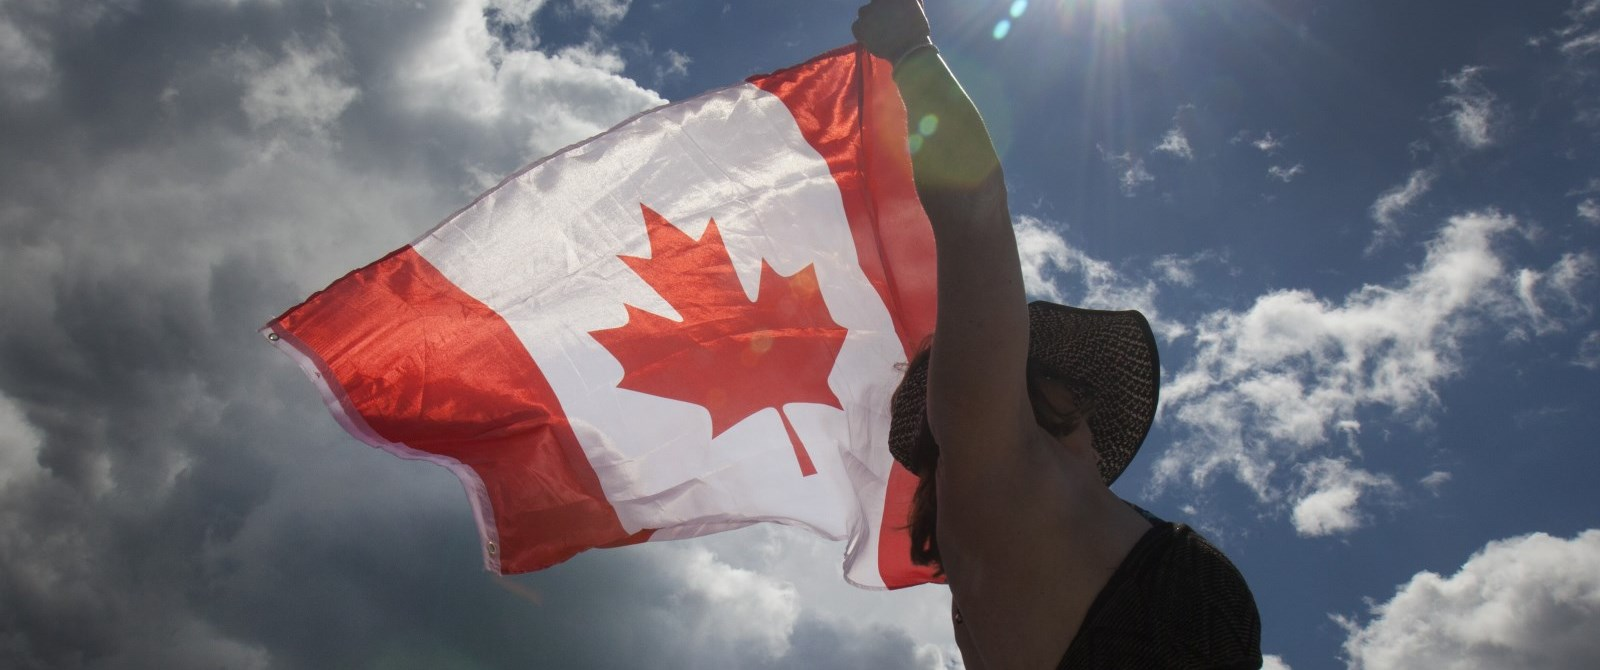 woman holding a canada flag